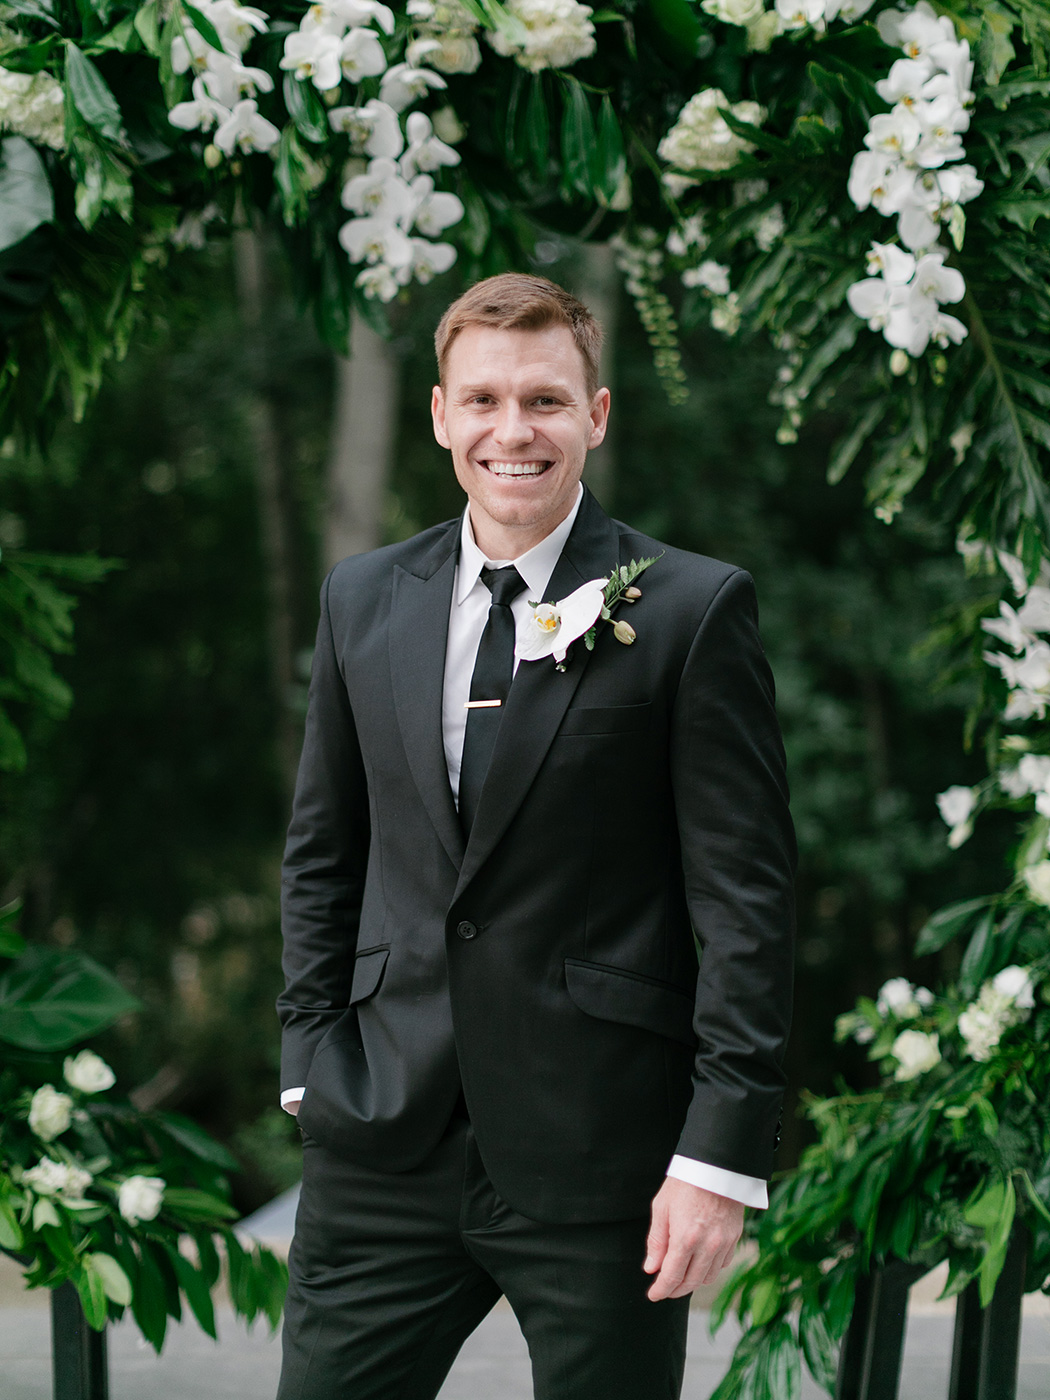 Groom | Rensche Mari Photography